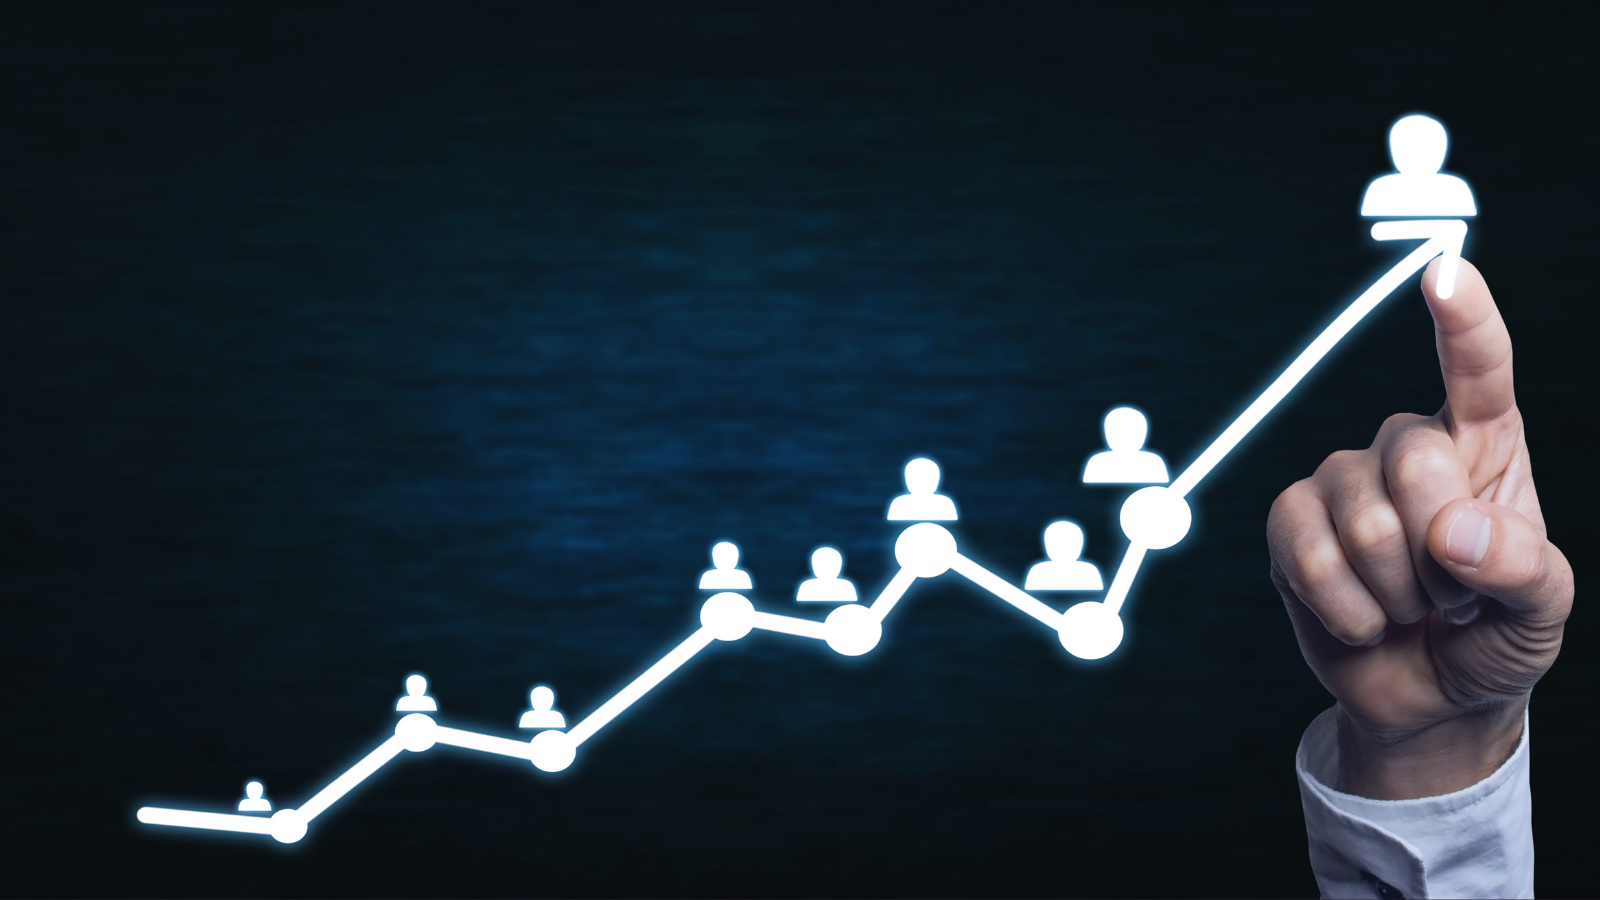 Tips to Prepare yourself for the Growth Ahead in the staffing industry